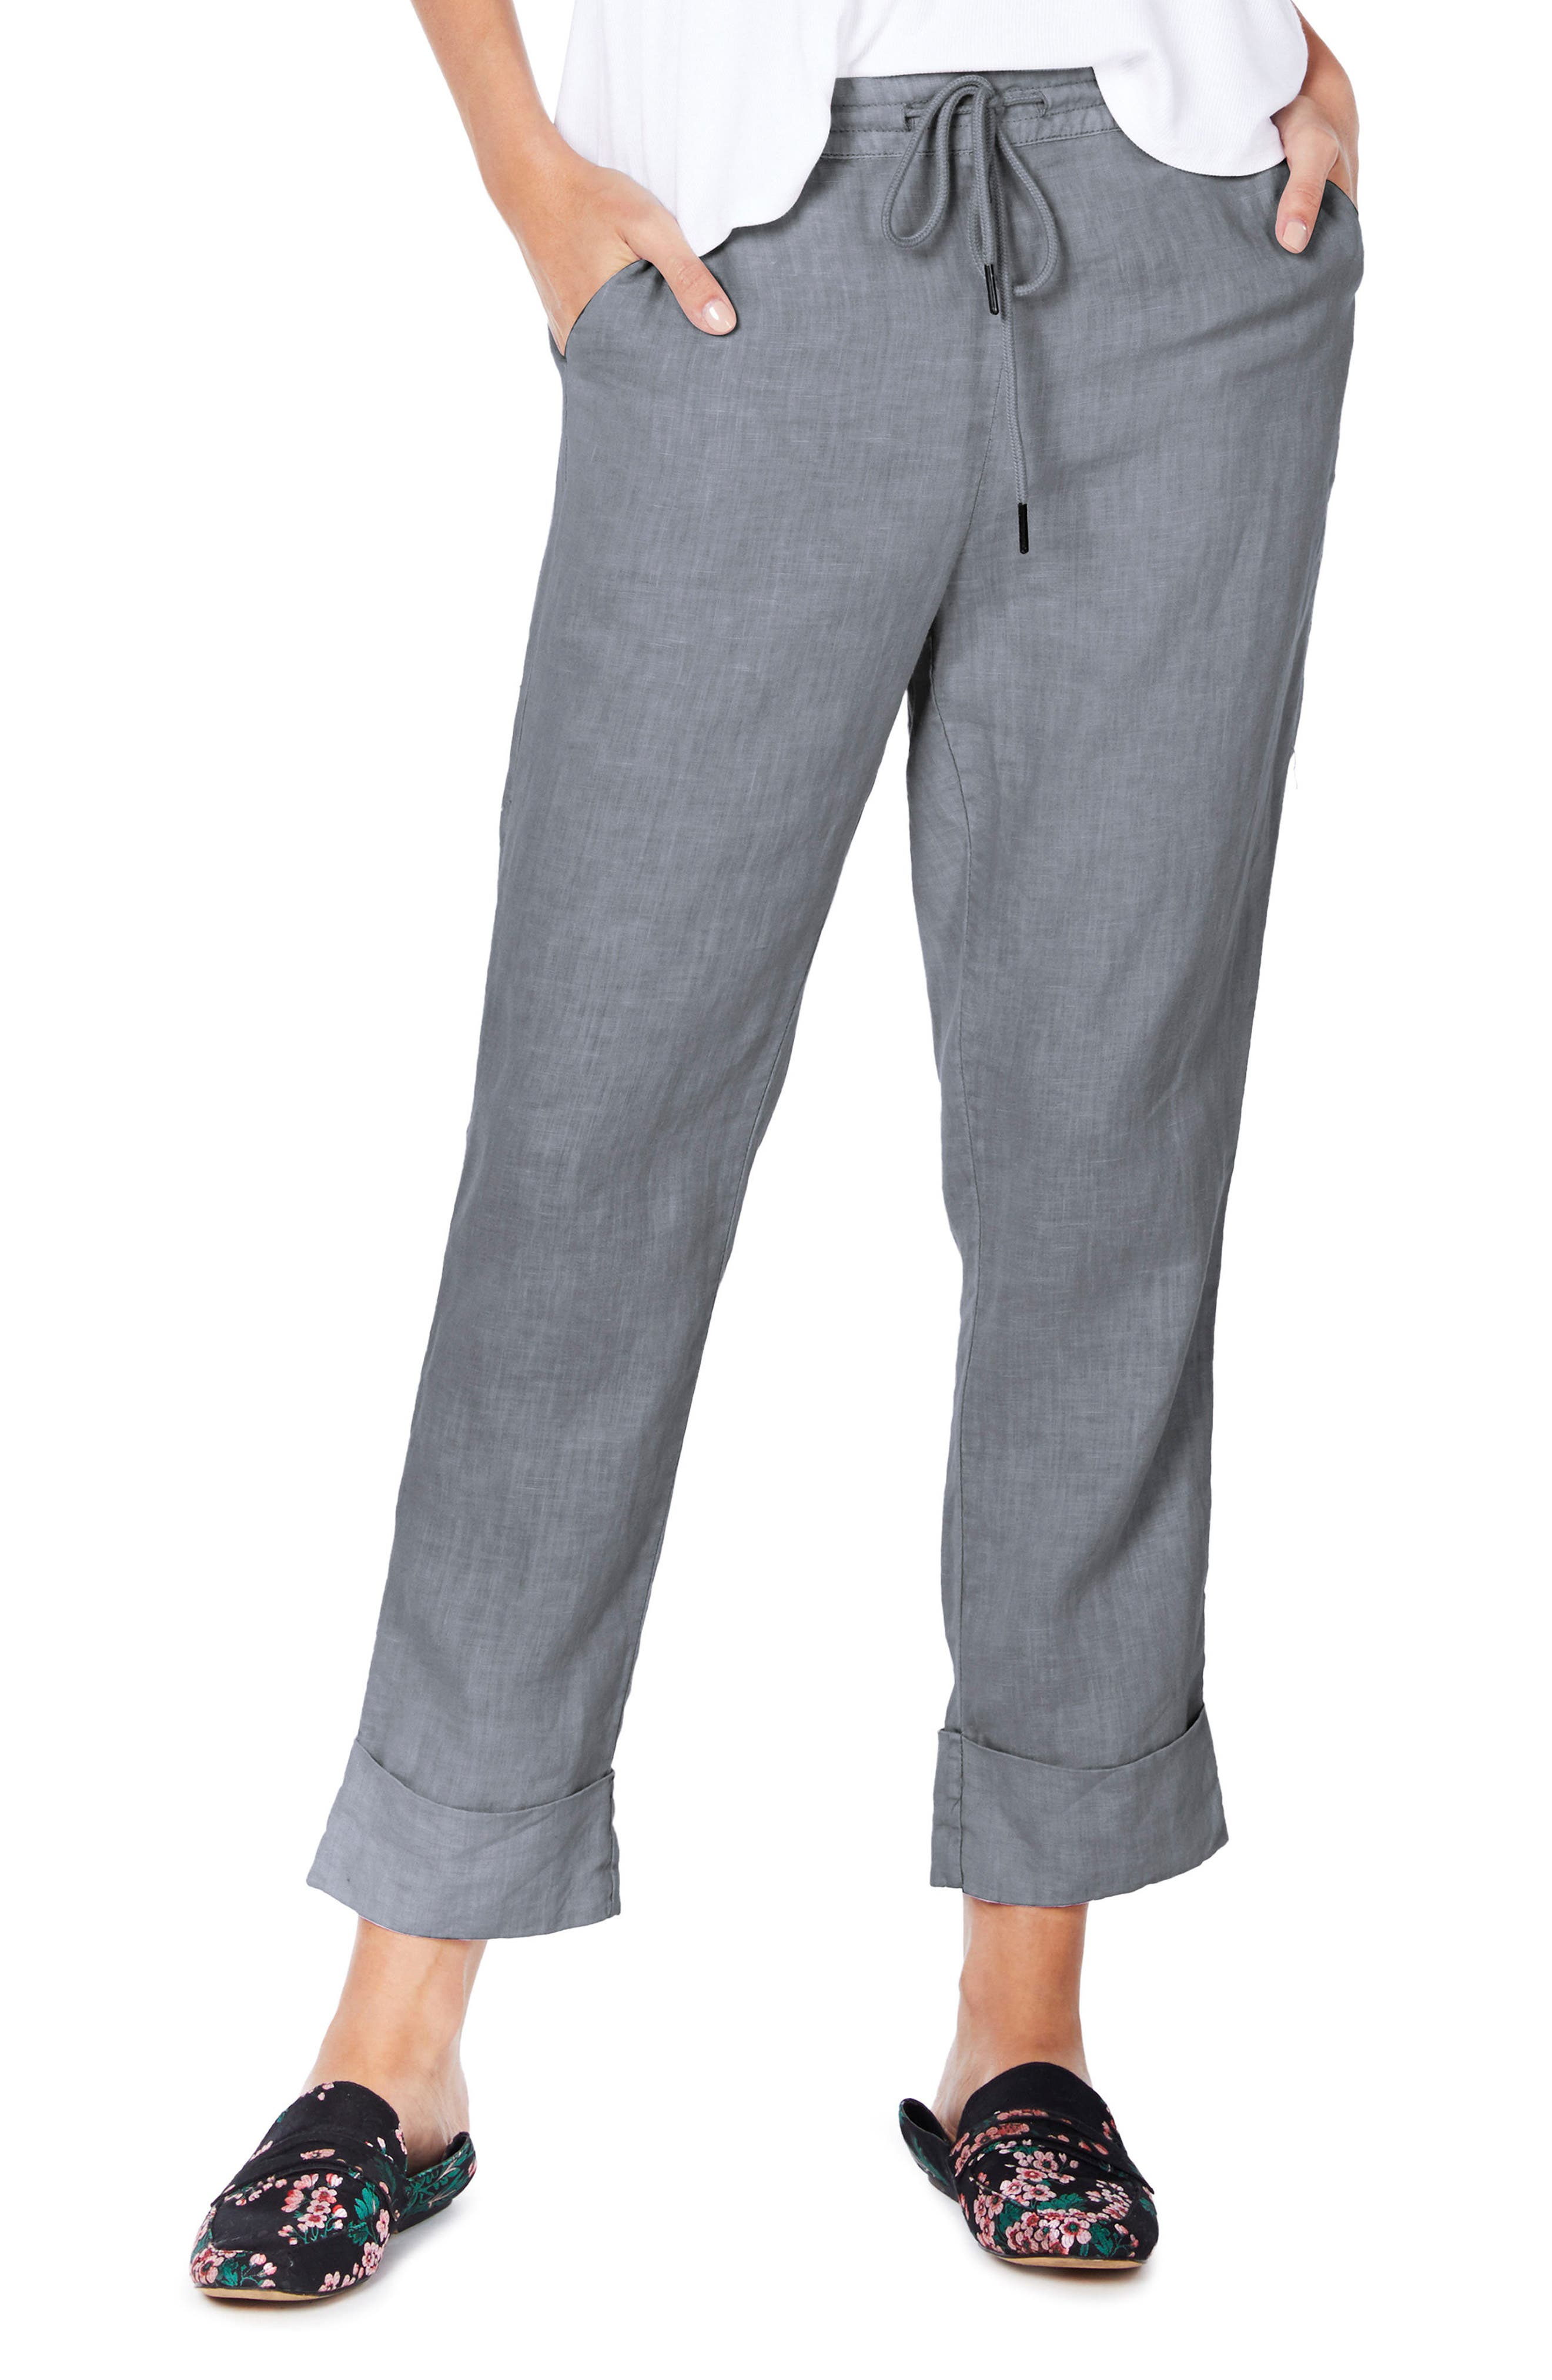 Cuffed Linen Pants,                             Main thumbnail 1, color,                             Galvanized